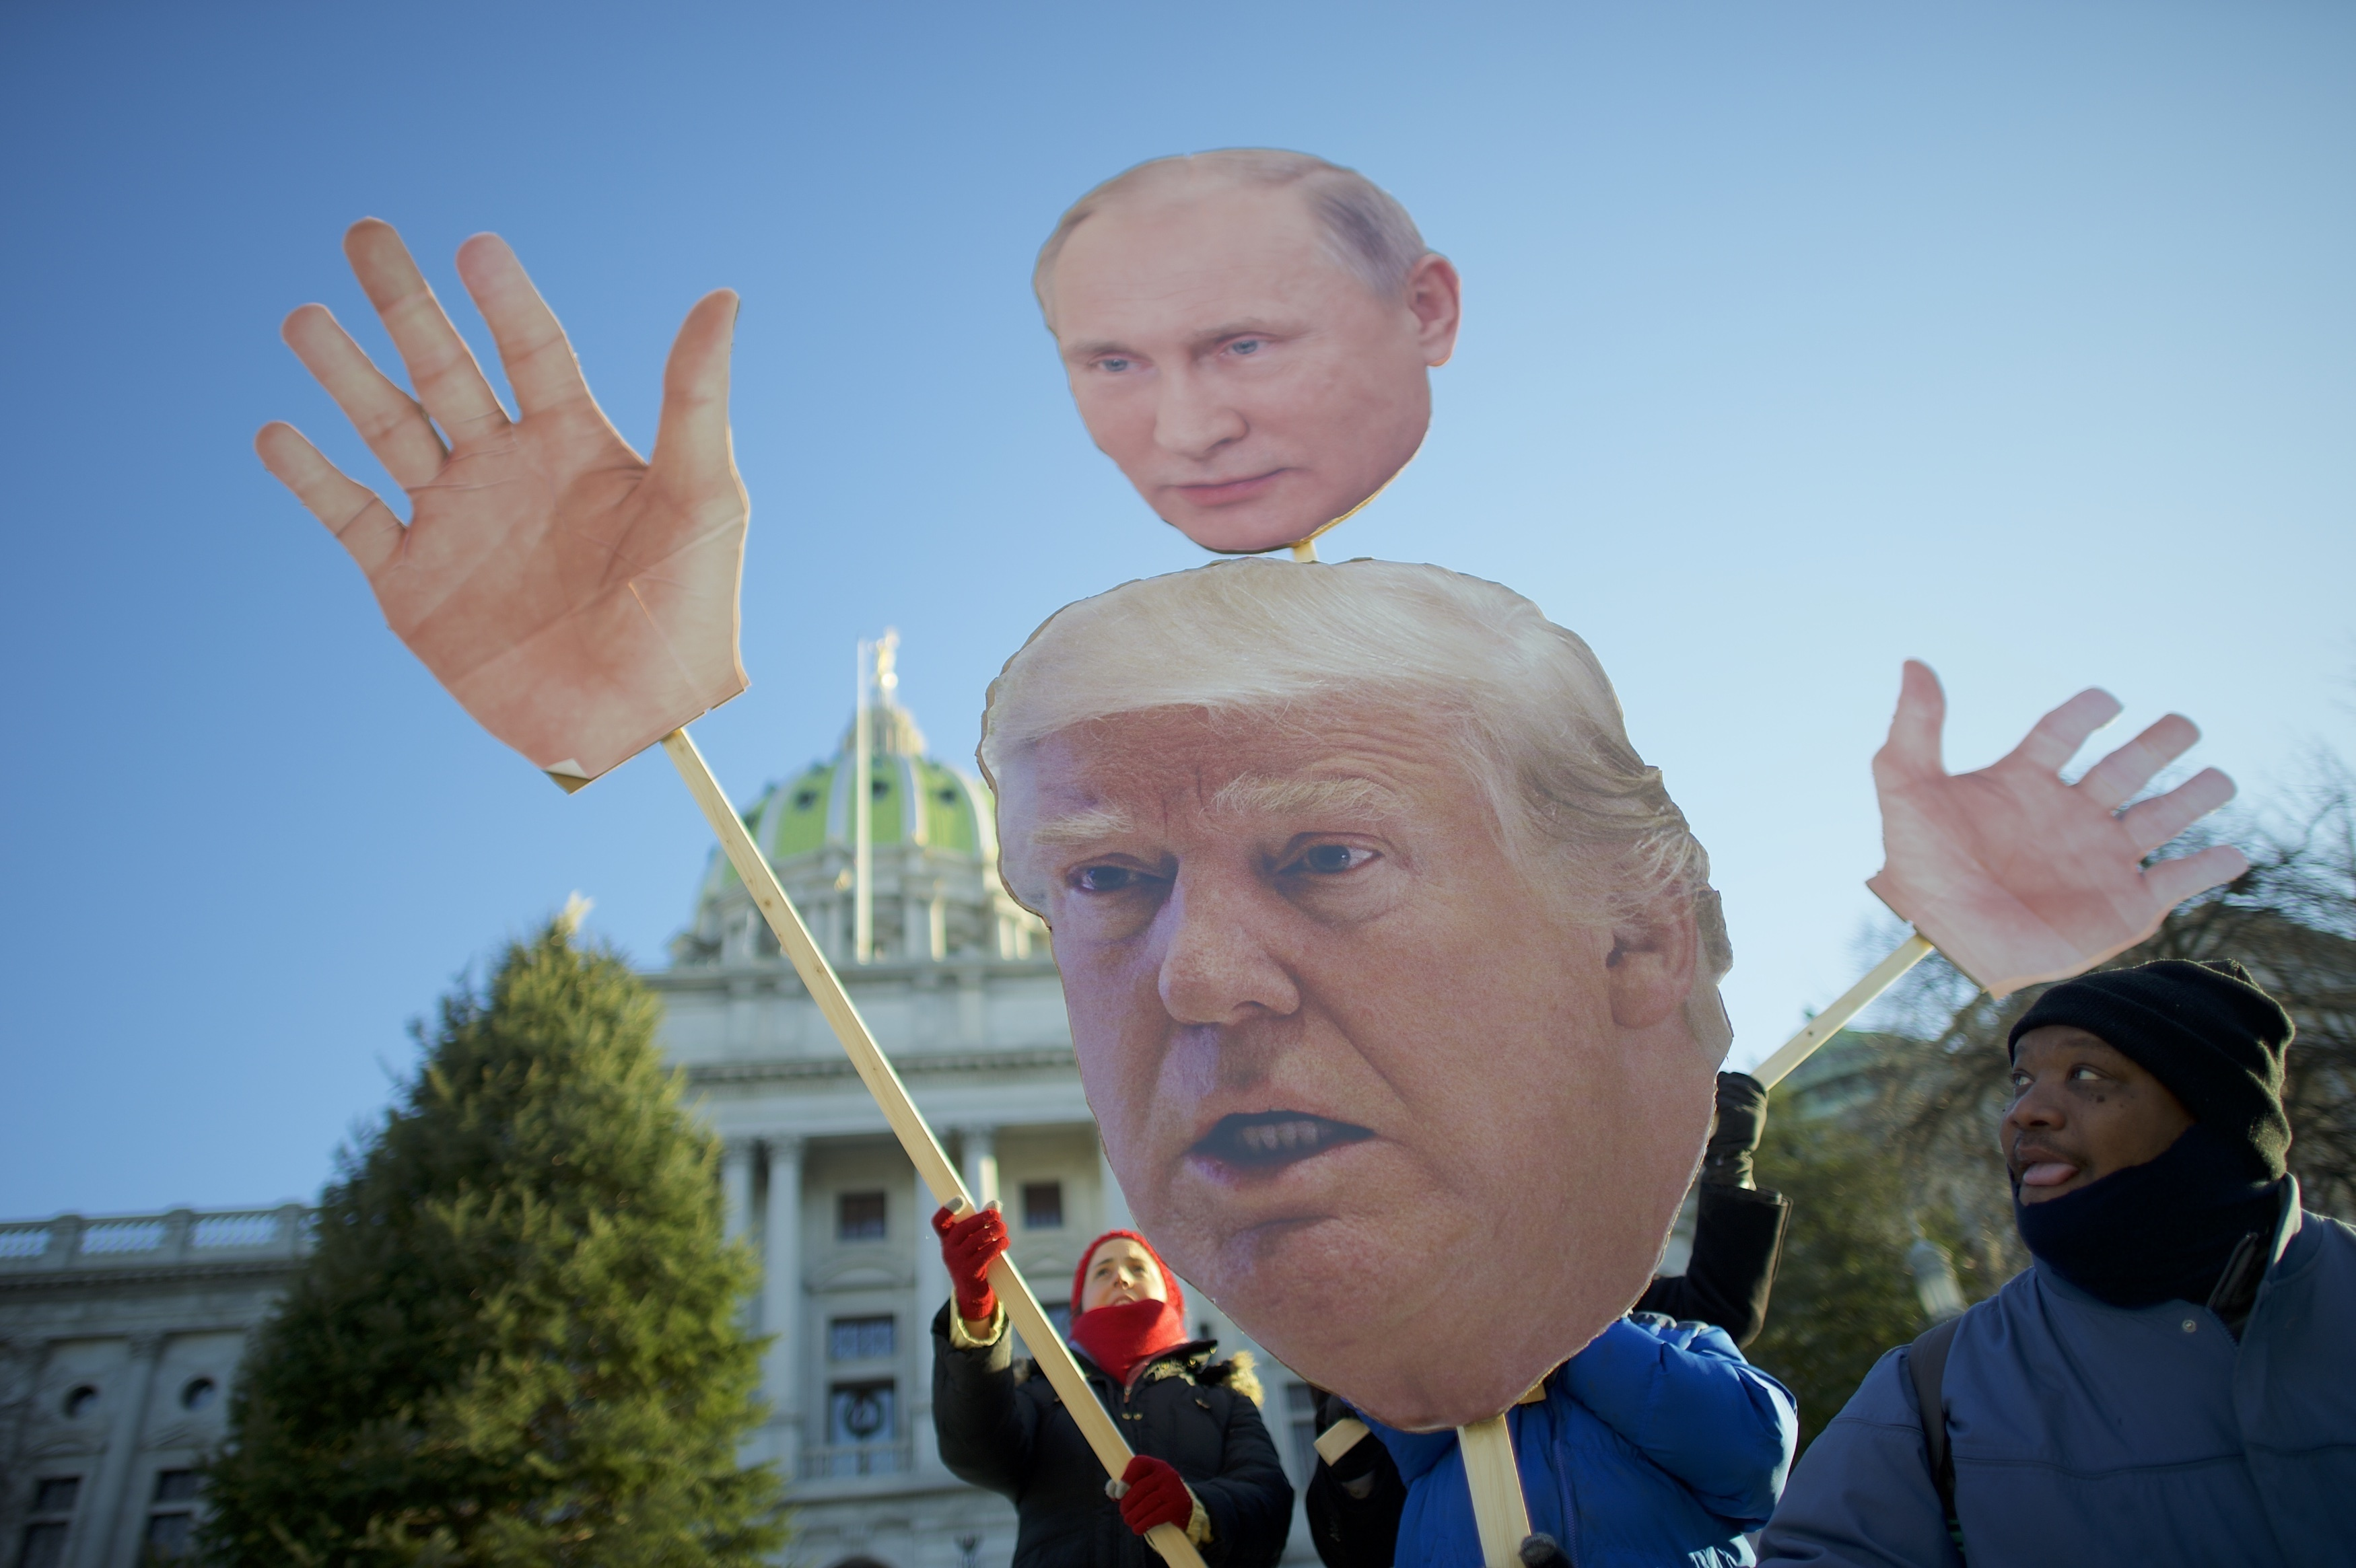 The whole Trump POTUS thing was a happy accident (for Putin, but not for anyone else in the world, really).